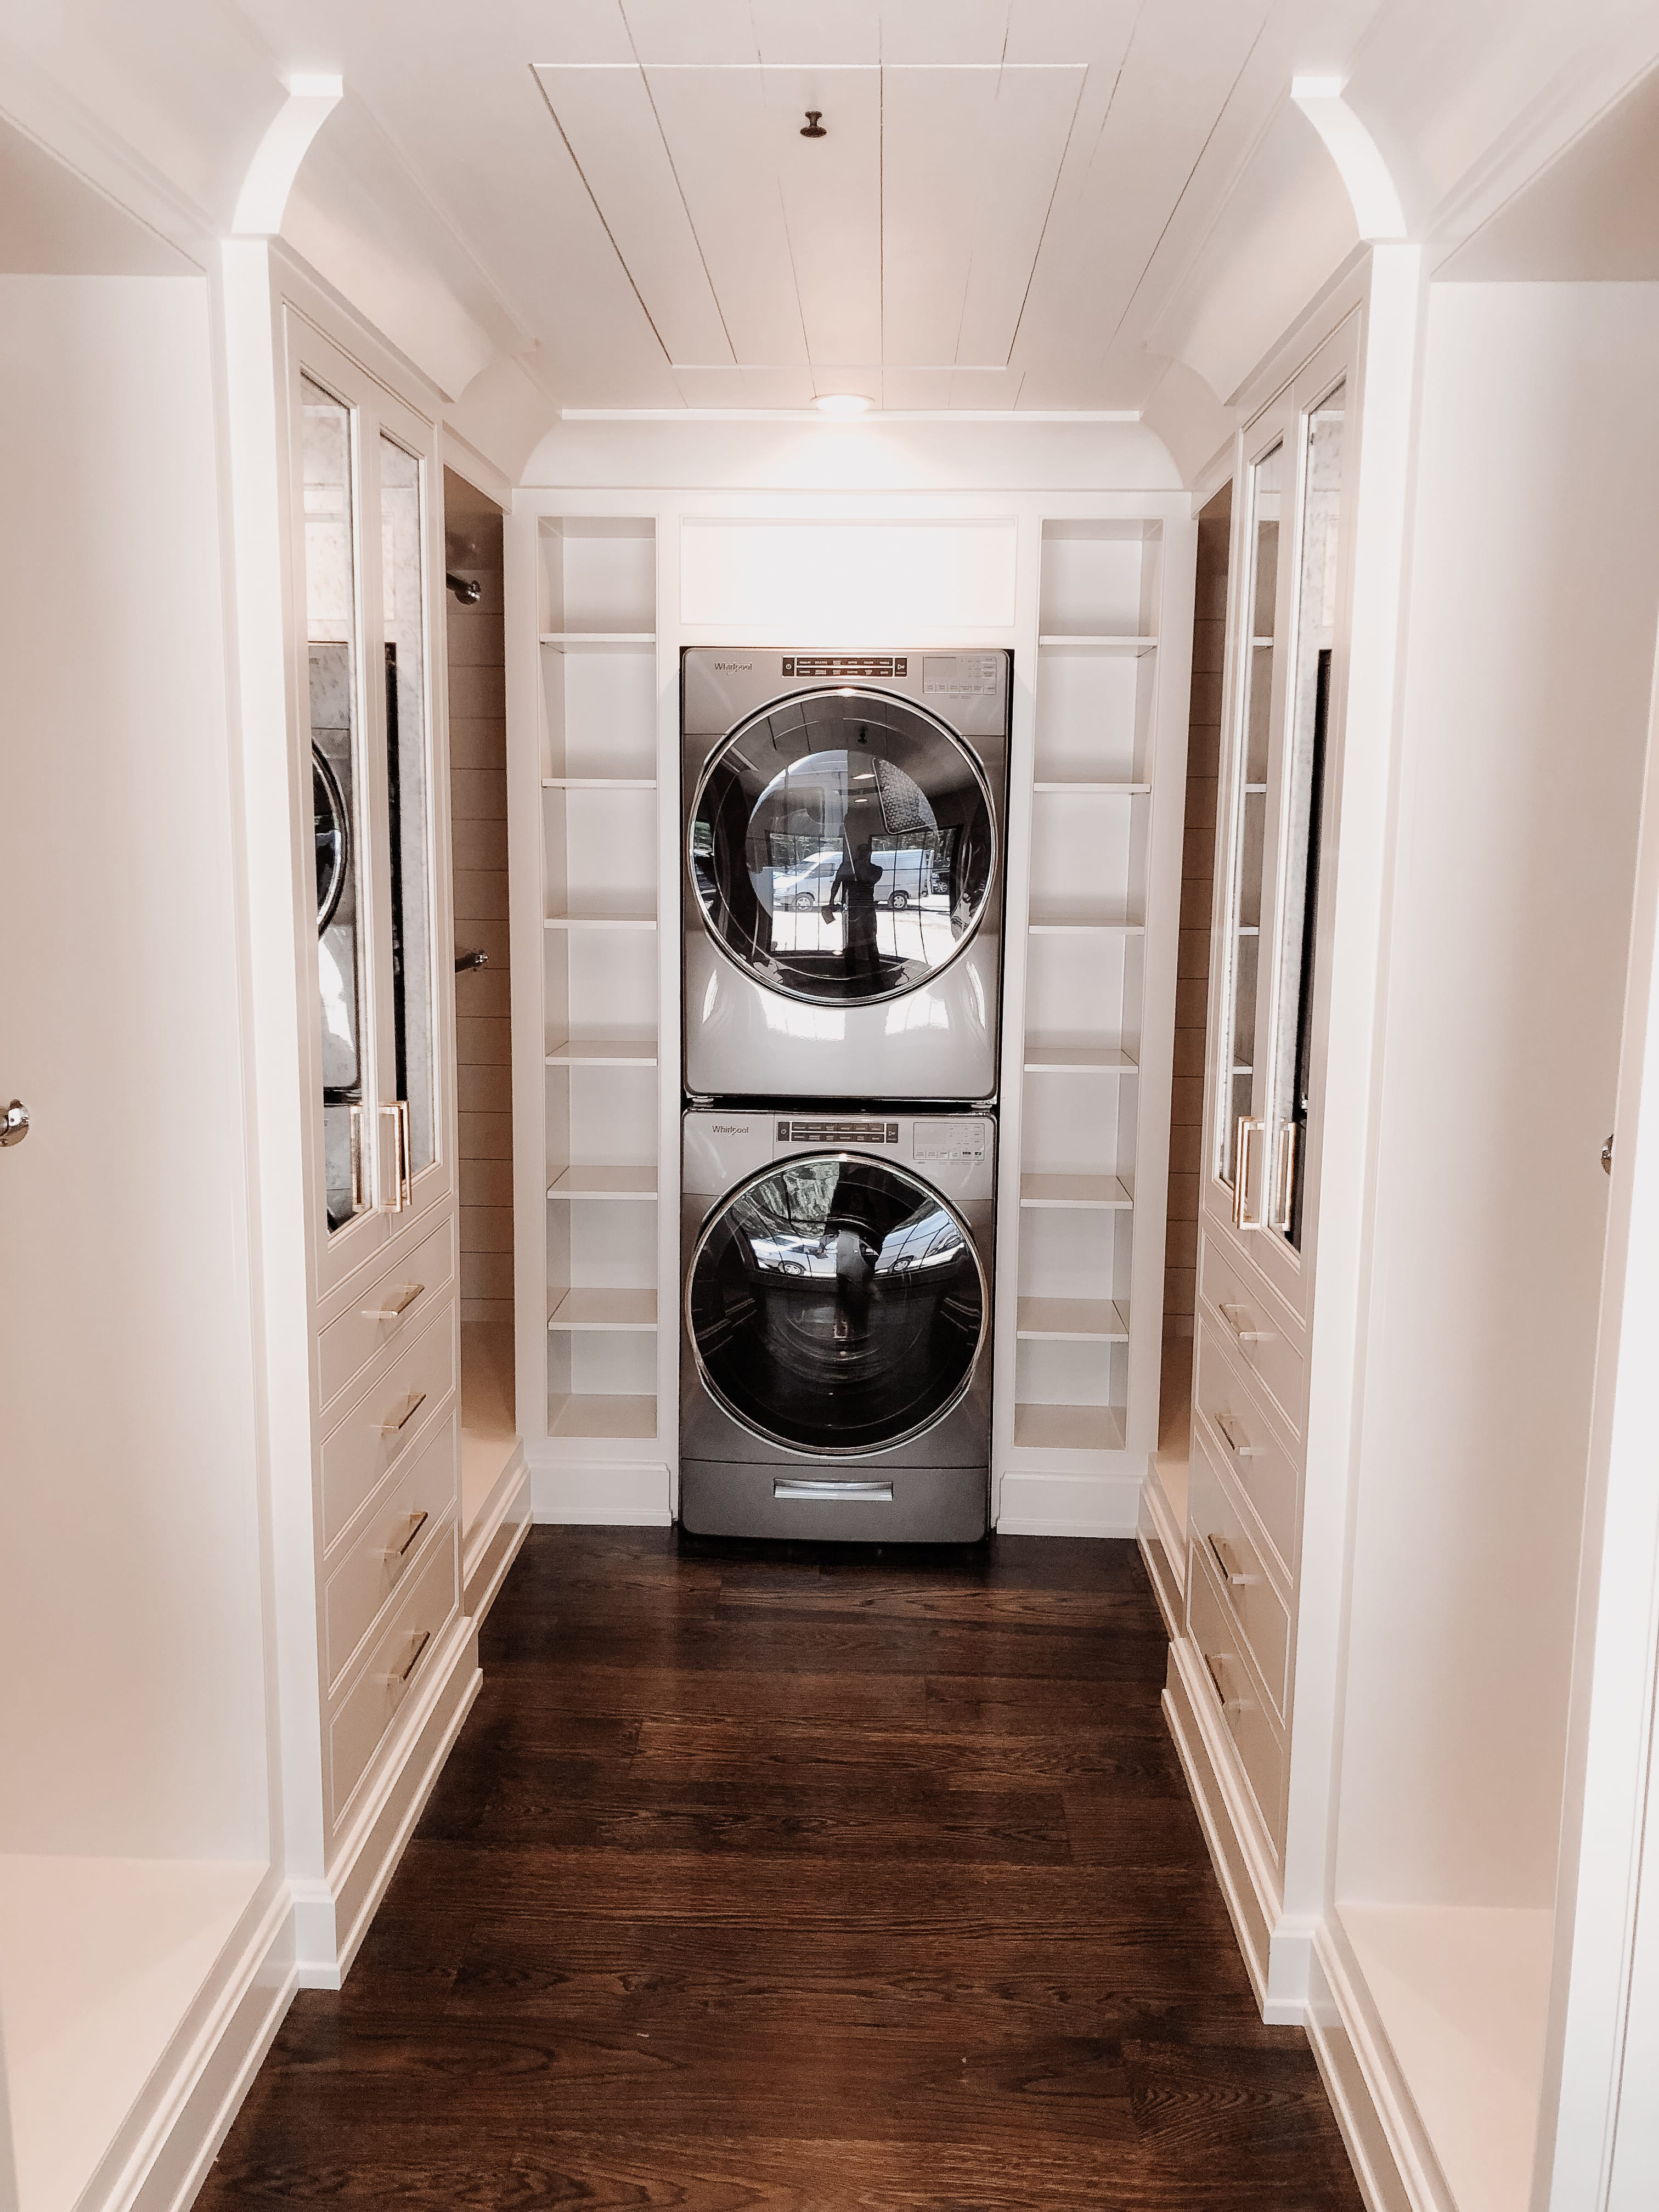 Built in Washer and Dryer Combo with White Shelving